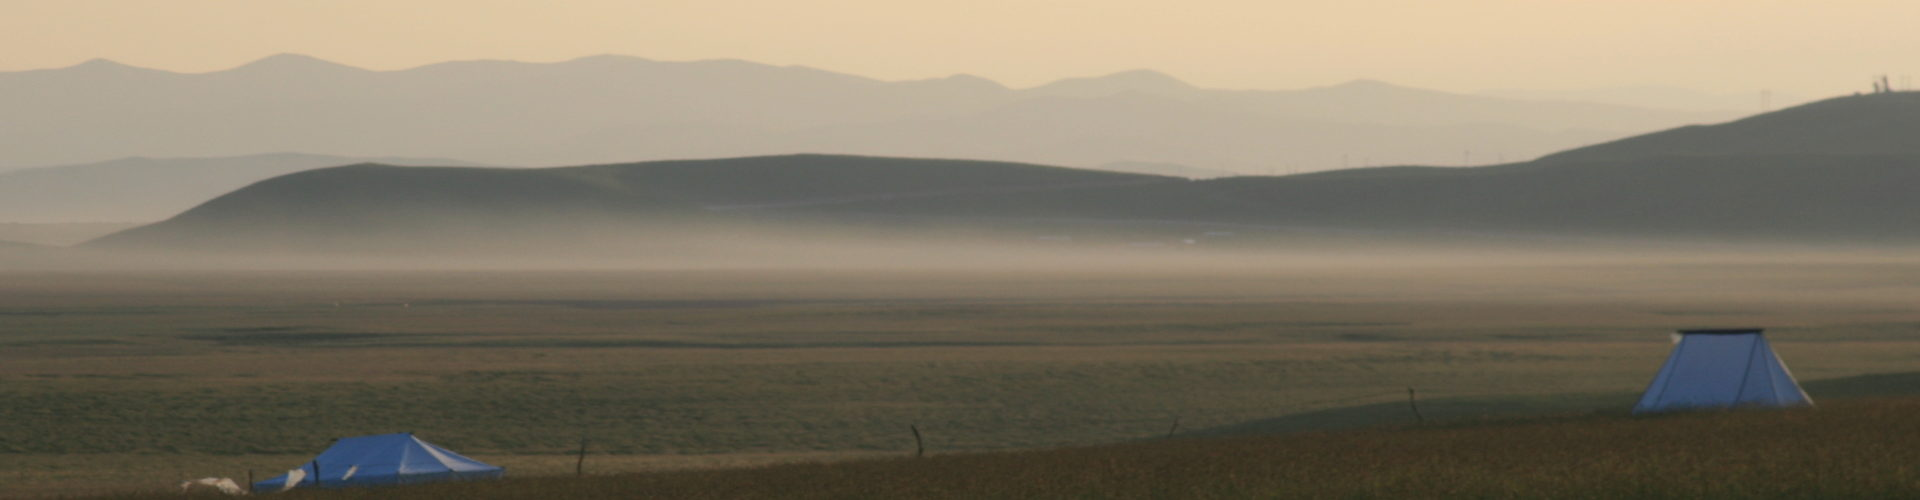 Moutains on the misty horizon beyond a plain